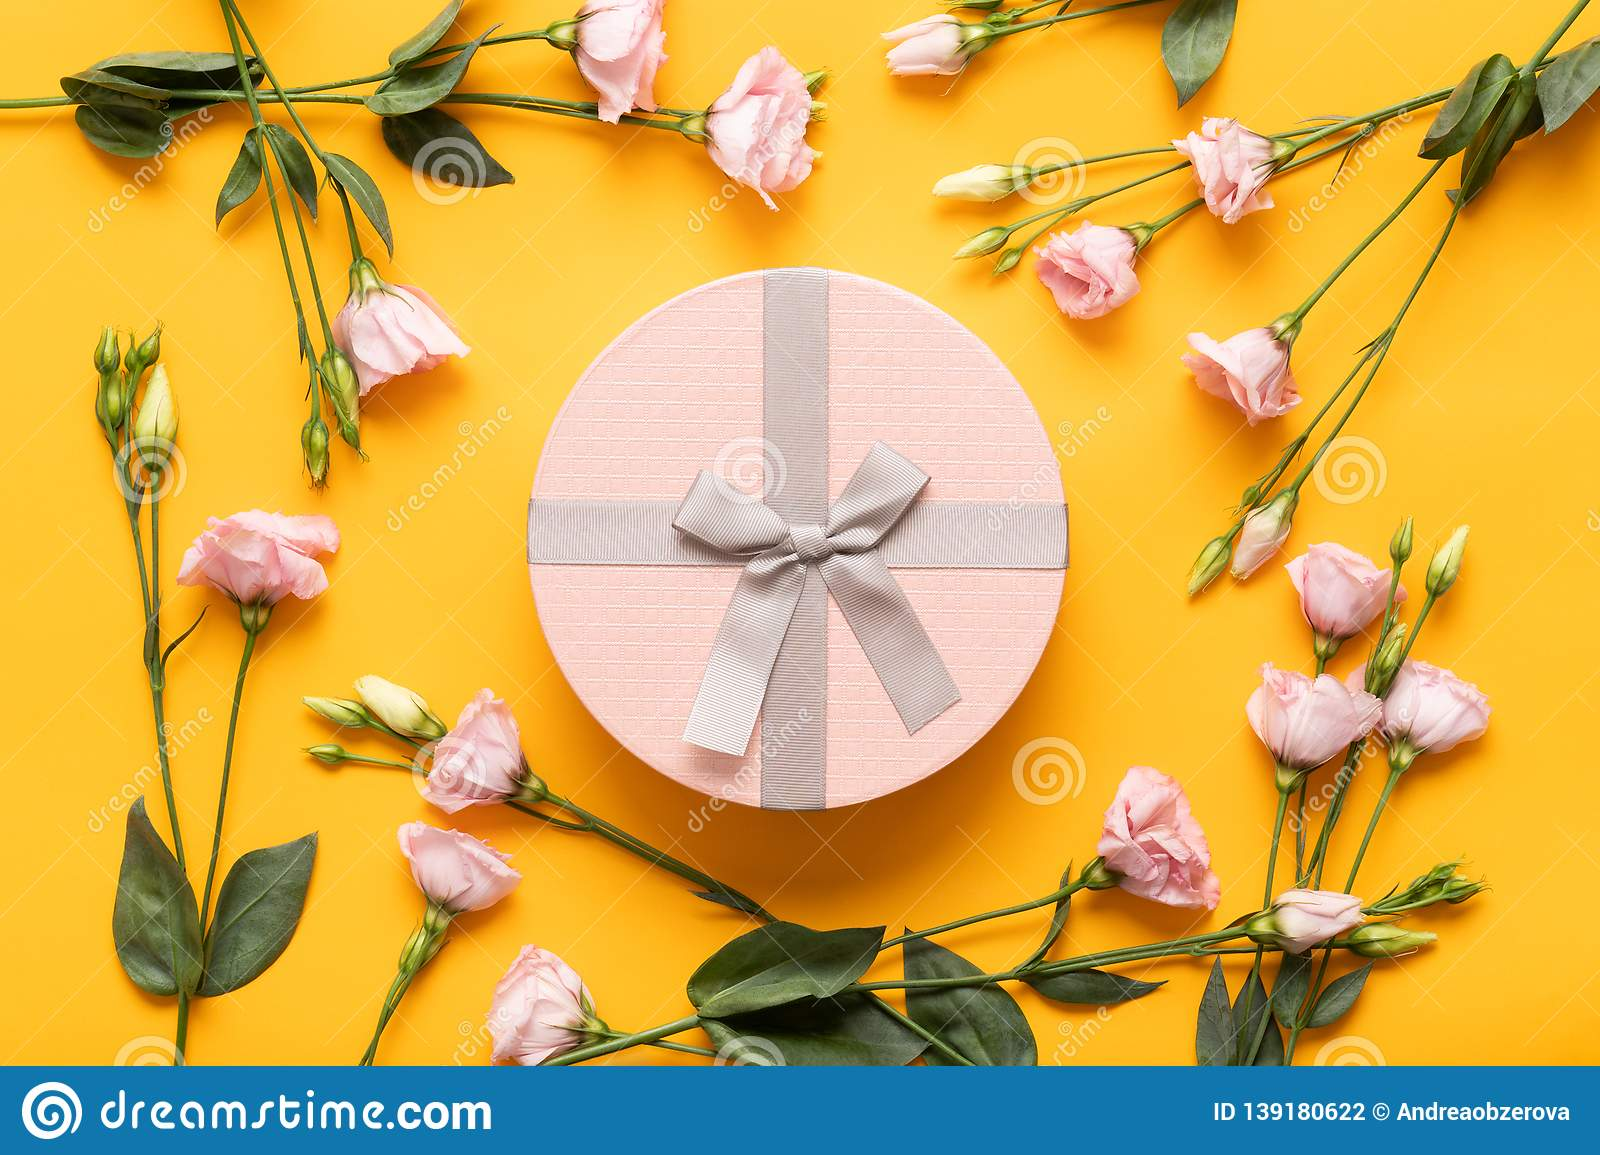 Happy Mother`s Day, Women`s Day, Valentine`s Day or Birthday Yellow and Pastel Pink Colored Background. Flat lay greeting card.